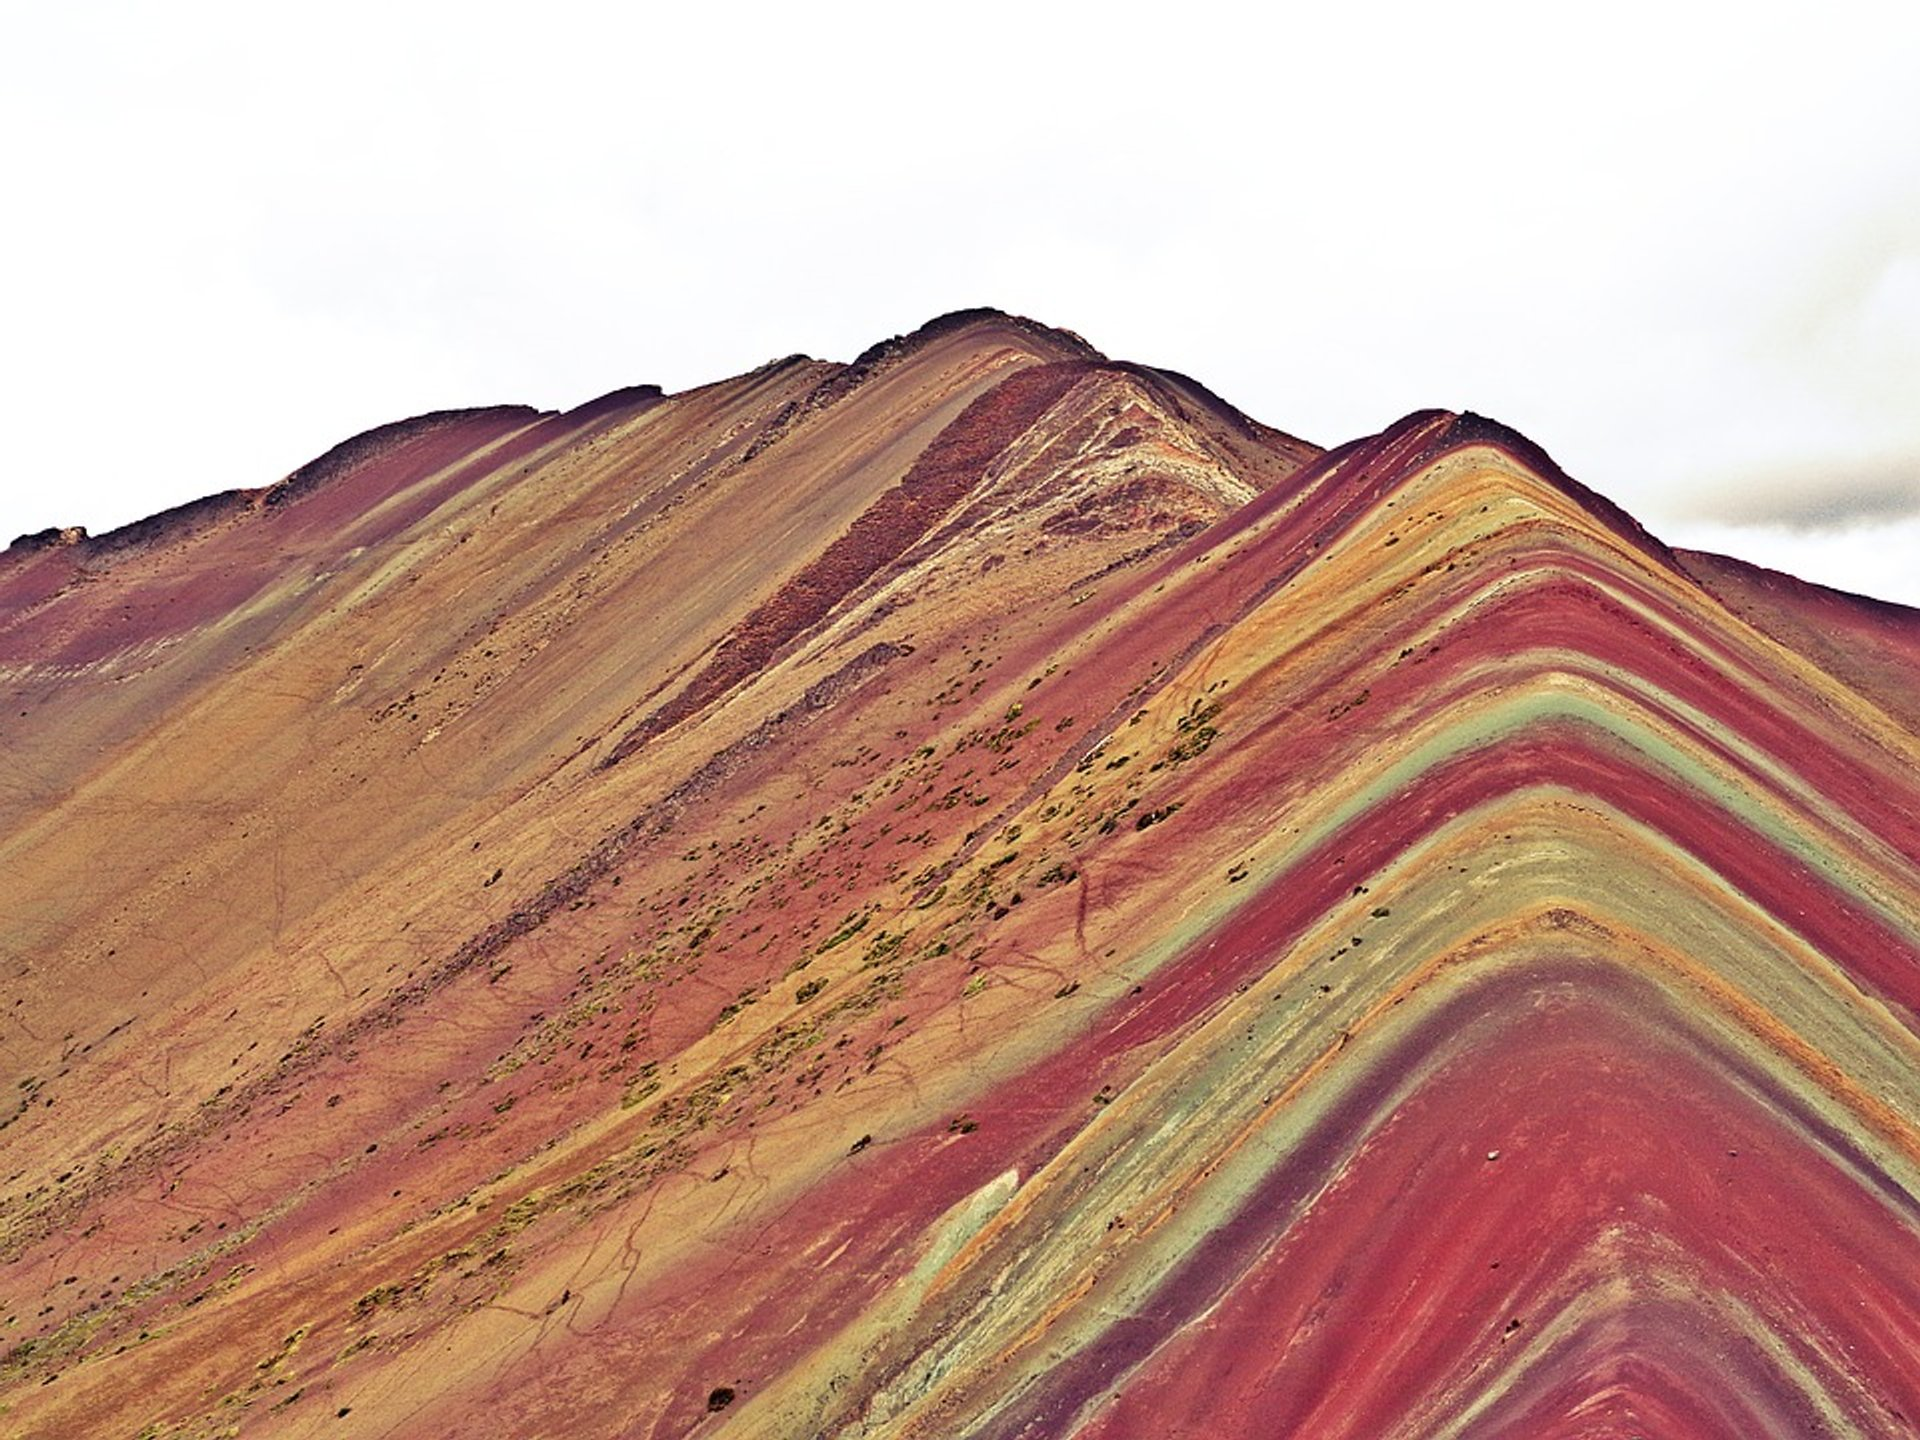 Hiking Rainbow Mountain in Peru 2019 - Best Time